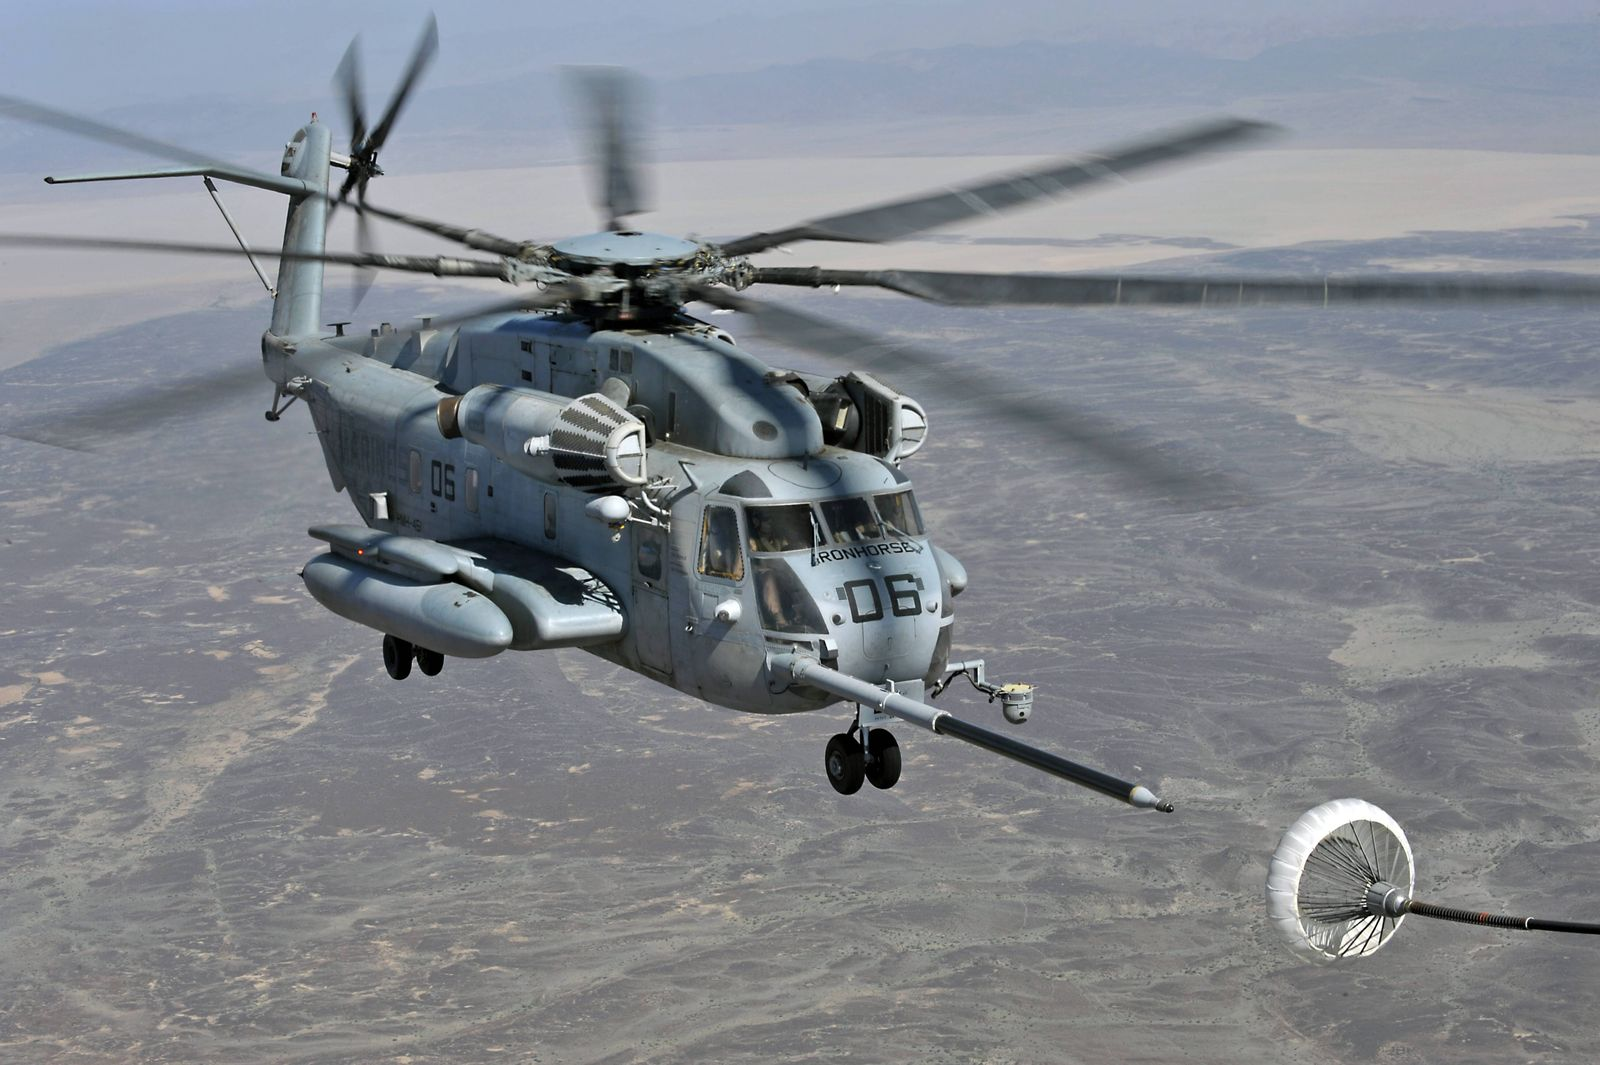 Grand Bara Djibouti April 23 2009 A Marine Corps CH 53E Super Stallion helicopter approaches an